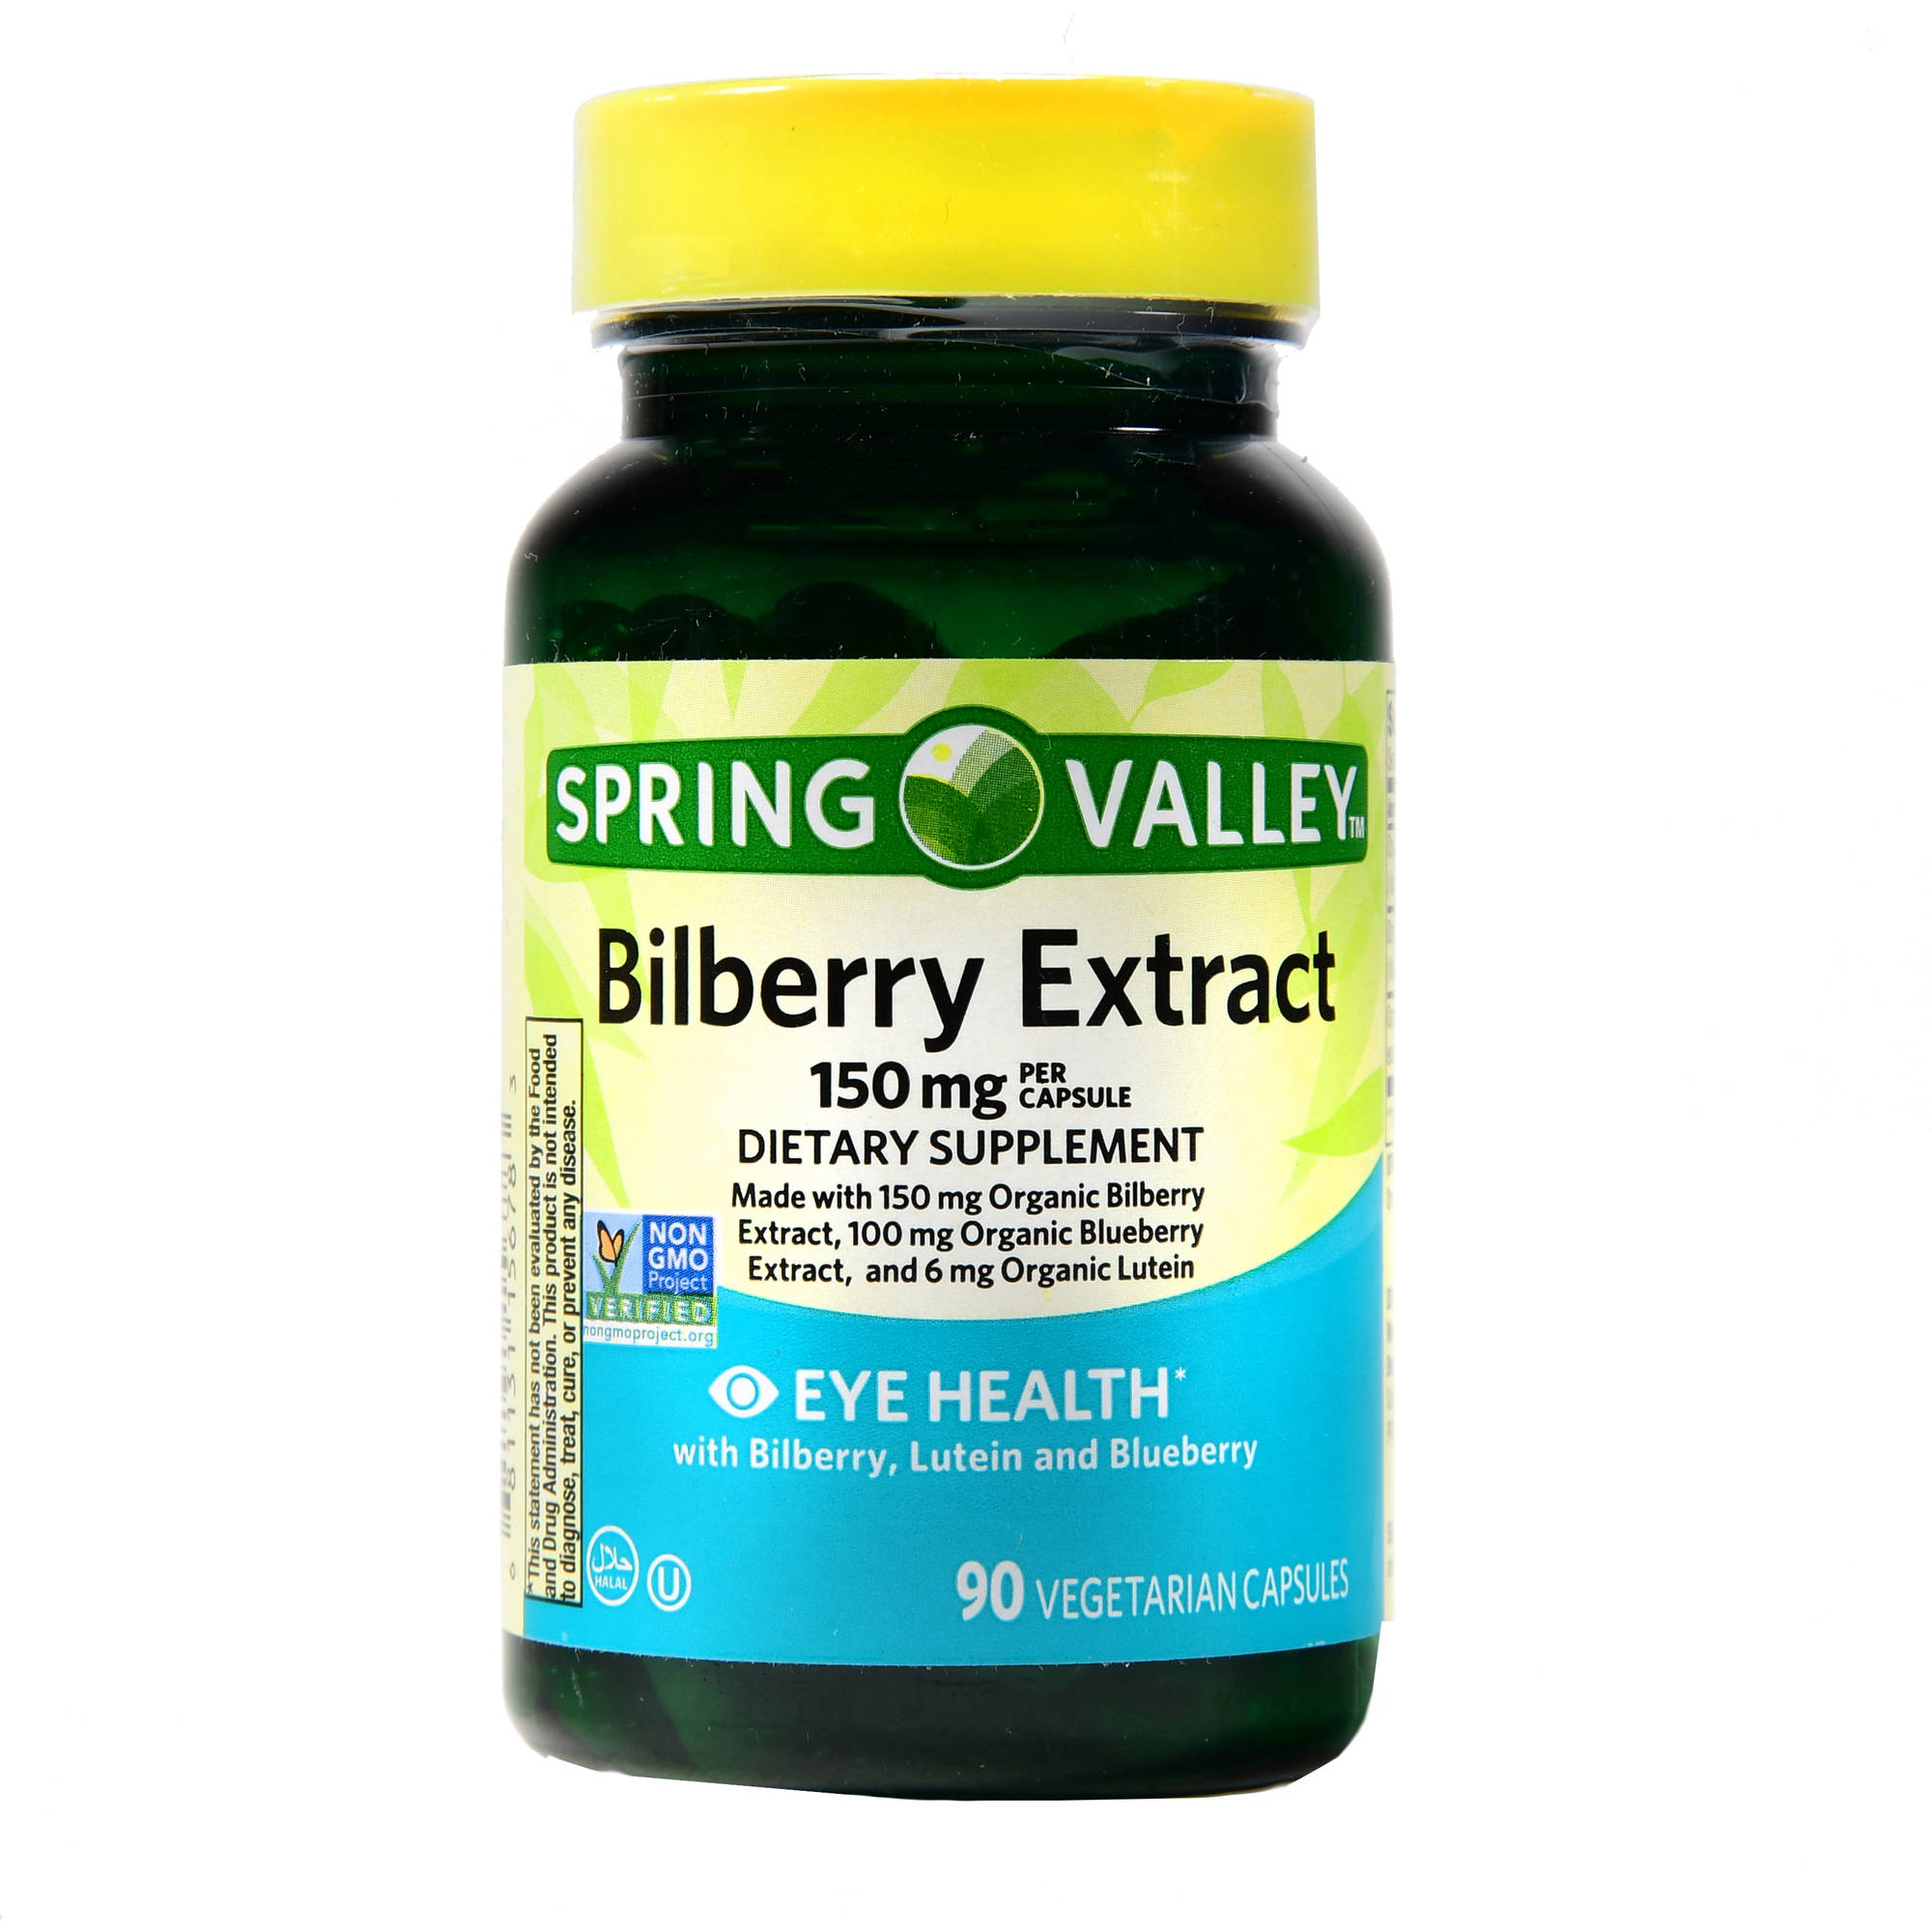 (2 Pack) Spring Valley Bilberry Extract With Lutein & Blueberry Capsules, 150 mg, 90 Ct